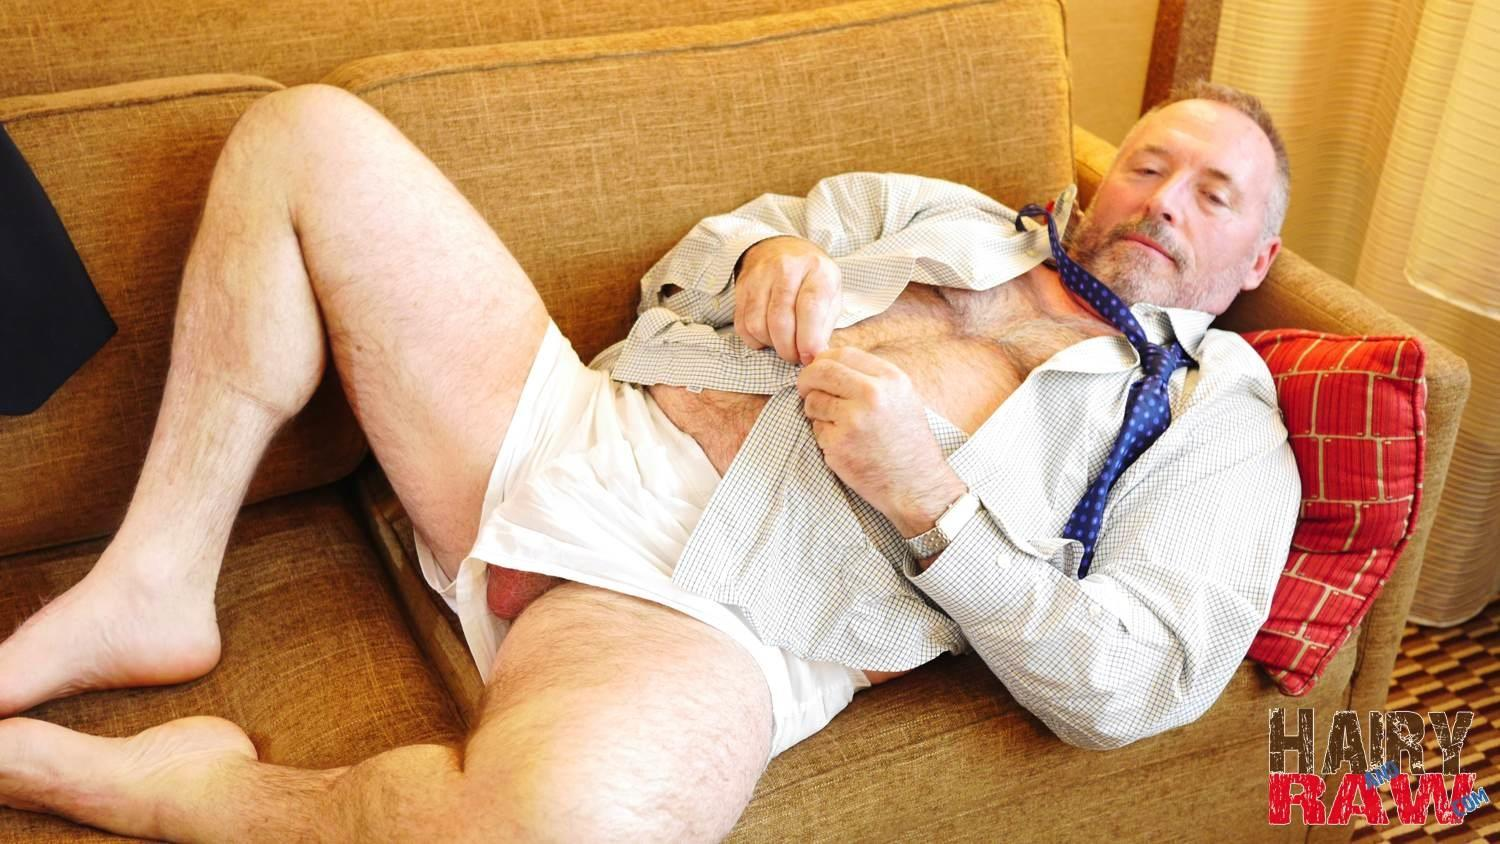 Hairy-and-Raw-Bo-Francis-Suited-Chubby-Hairy-Daddy-Jerking-Off-Thick-Cock-Twink-Jerking-Off-And-Eating-His-Own-Cum-Amateur-Gay-Porn-06 Suit and Tie Hairy Chubby Businessman Jerking His Hairy Cock